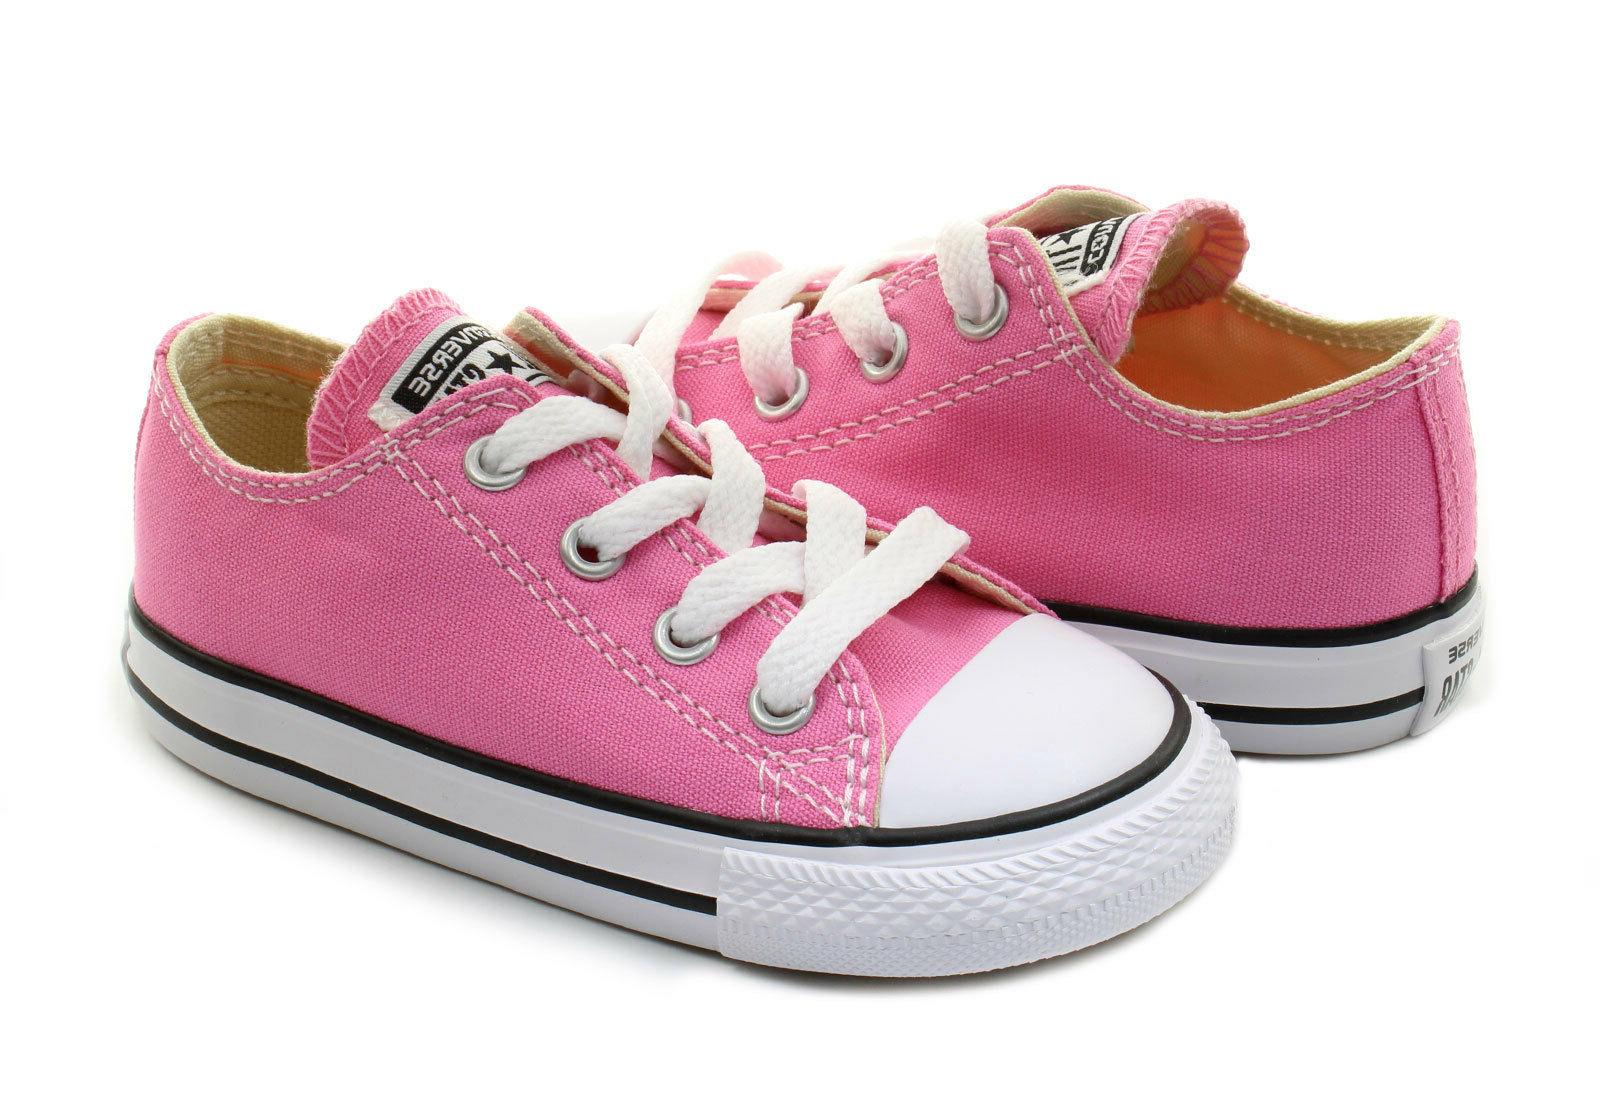 Converse All Star Ox Pink White Infant Toddler Little Kids G